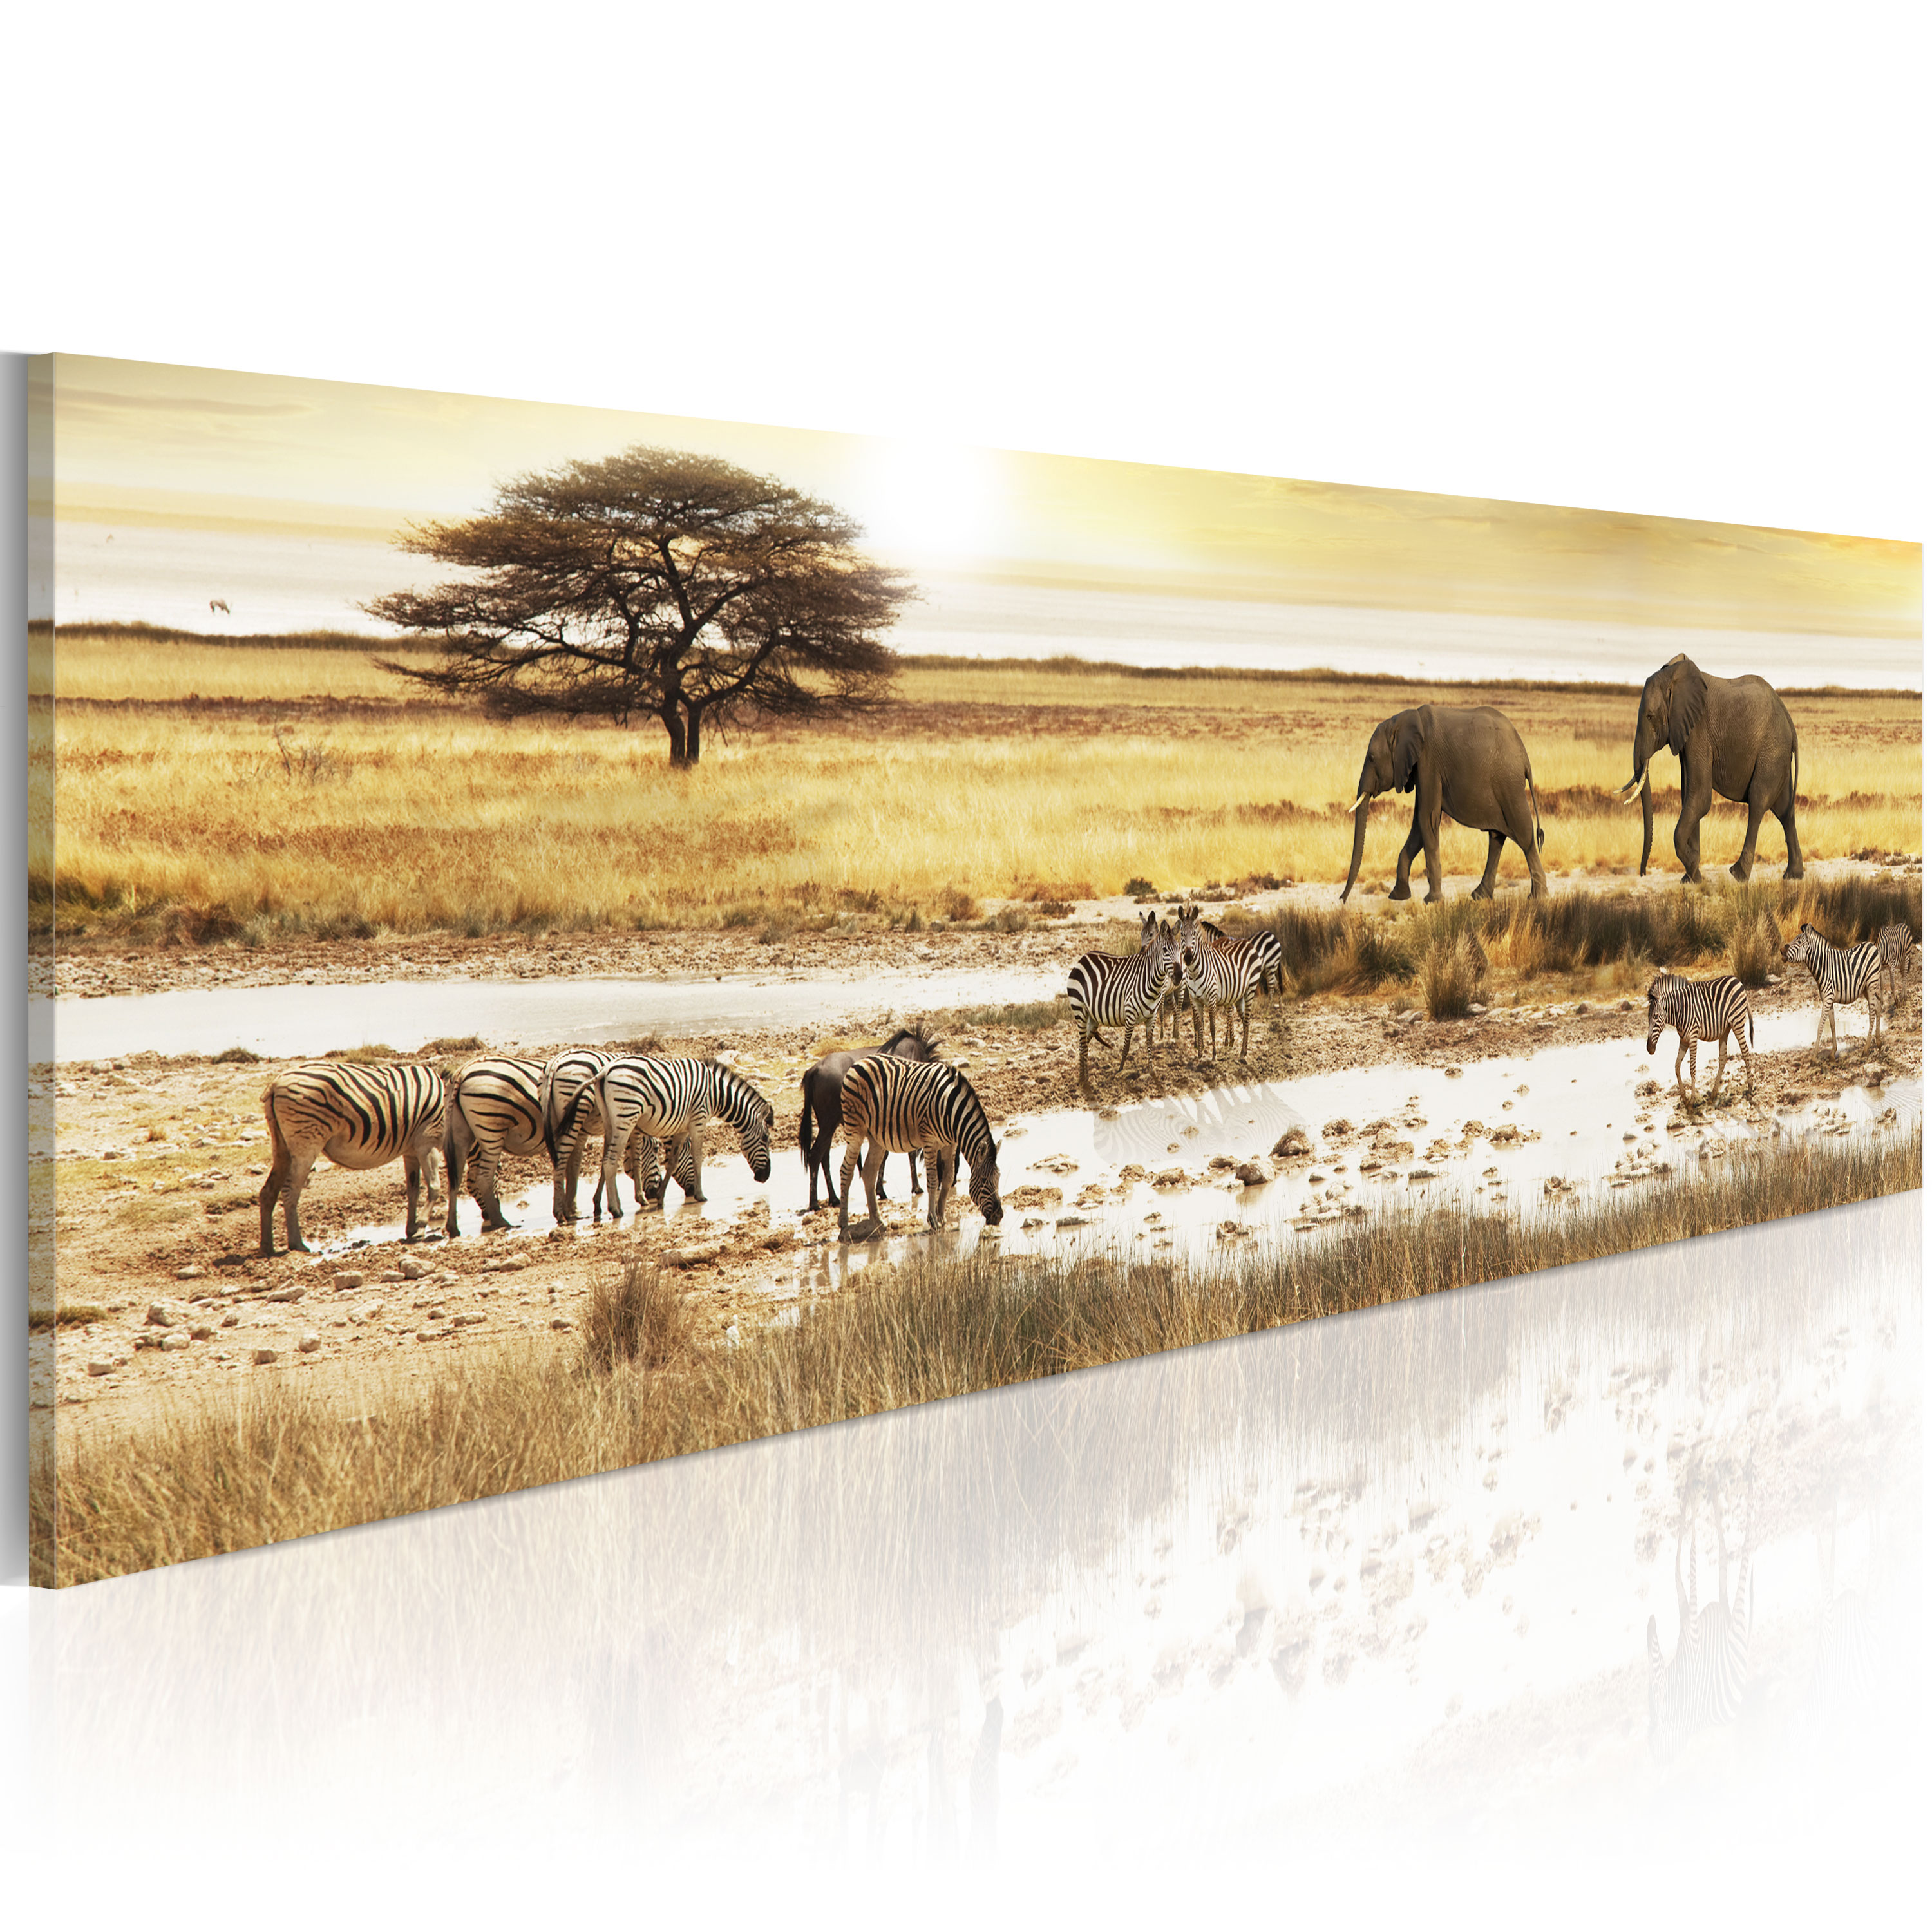 Obraz - Africa: at the waterhole 120x40